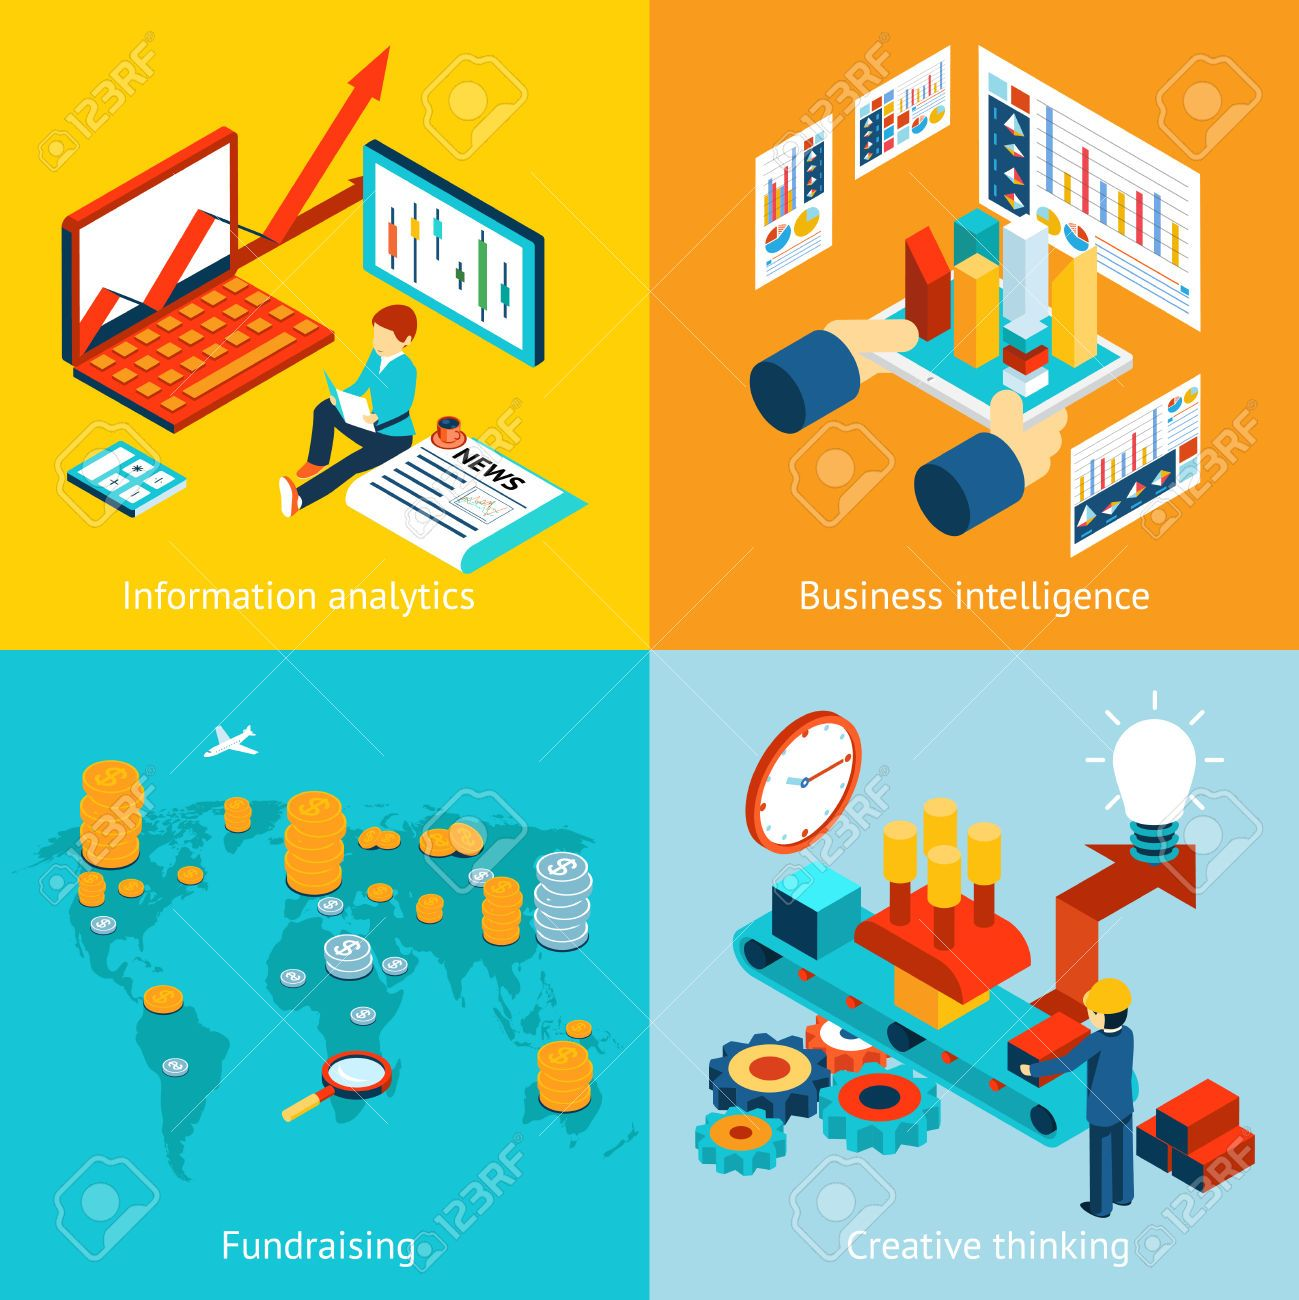 telefundraising vector Google Search Business